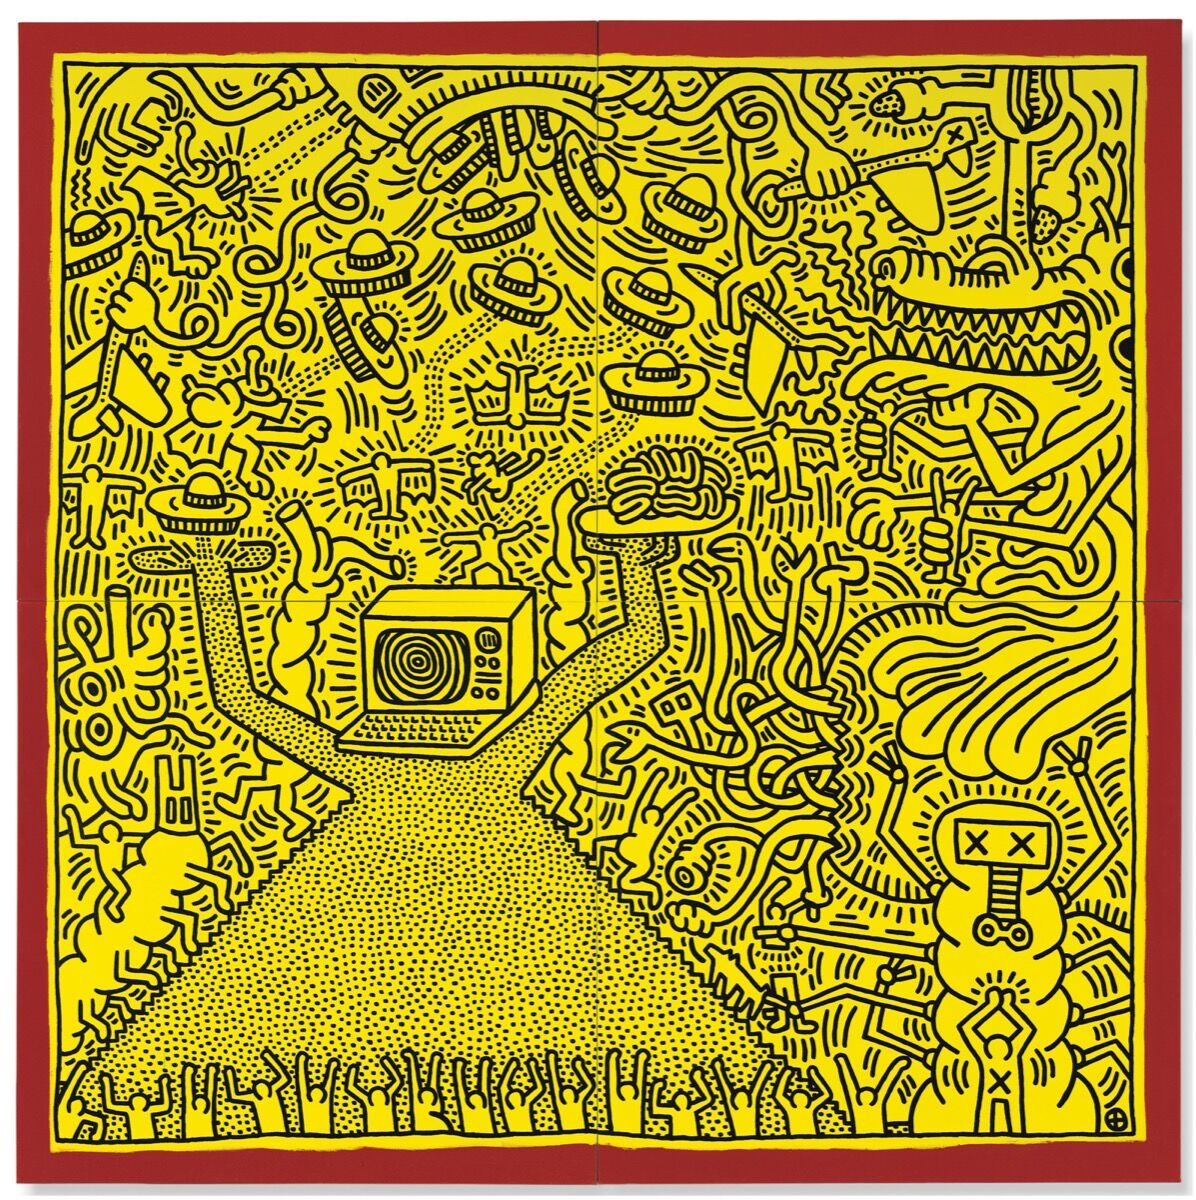 Keith Haring, Untitled, 1984. Courtesy of Christie's.